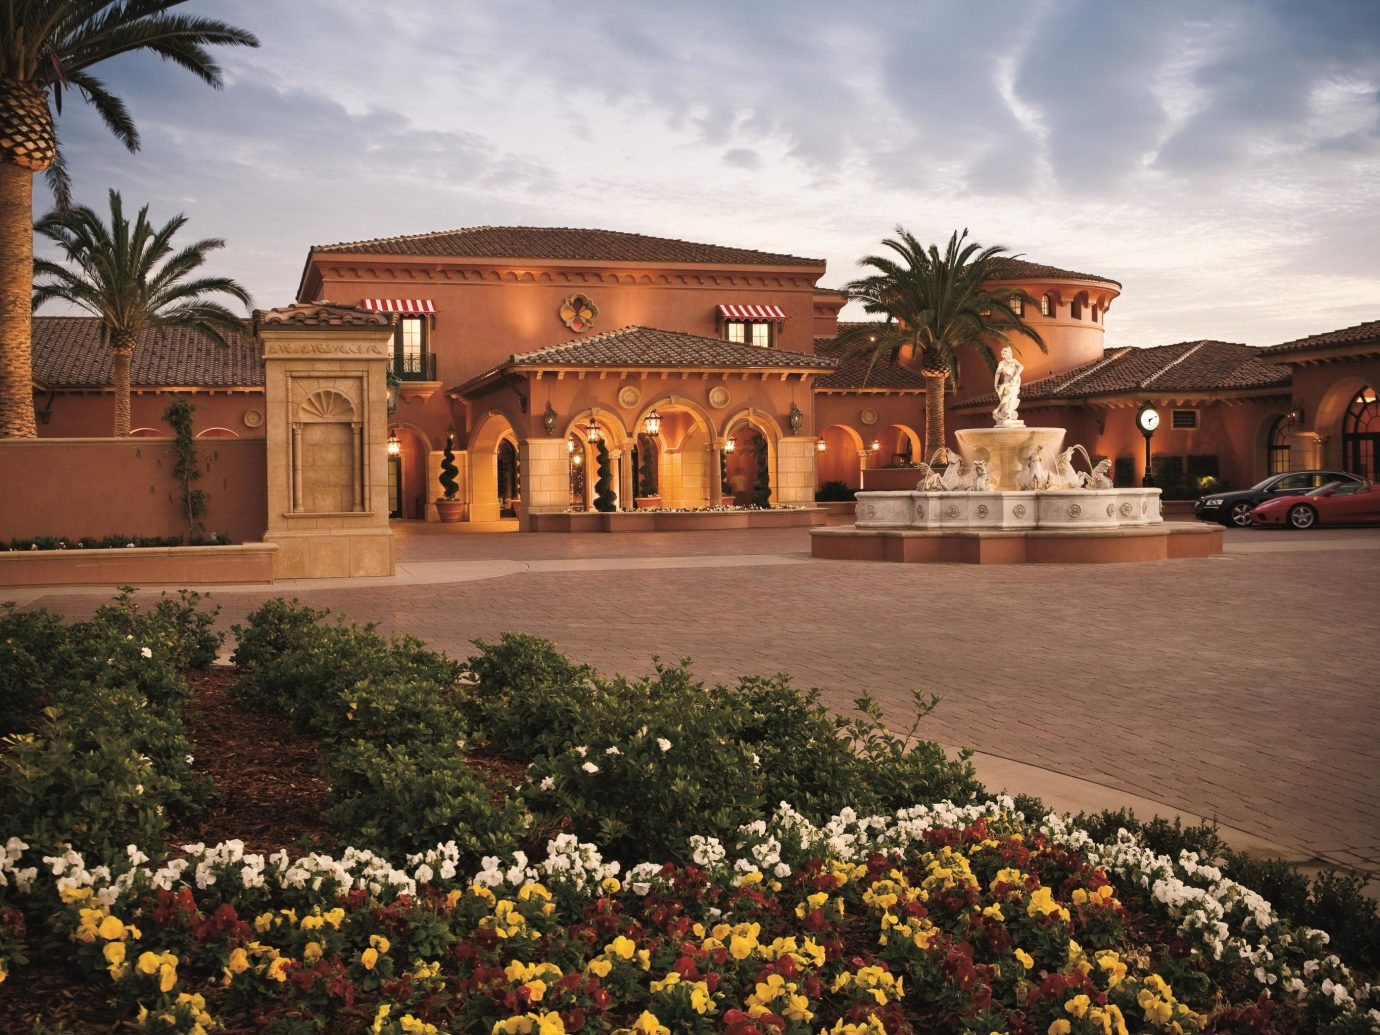 The Fairmont Grand Del Mar Hotel In San Diego, California